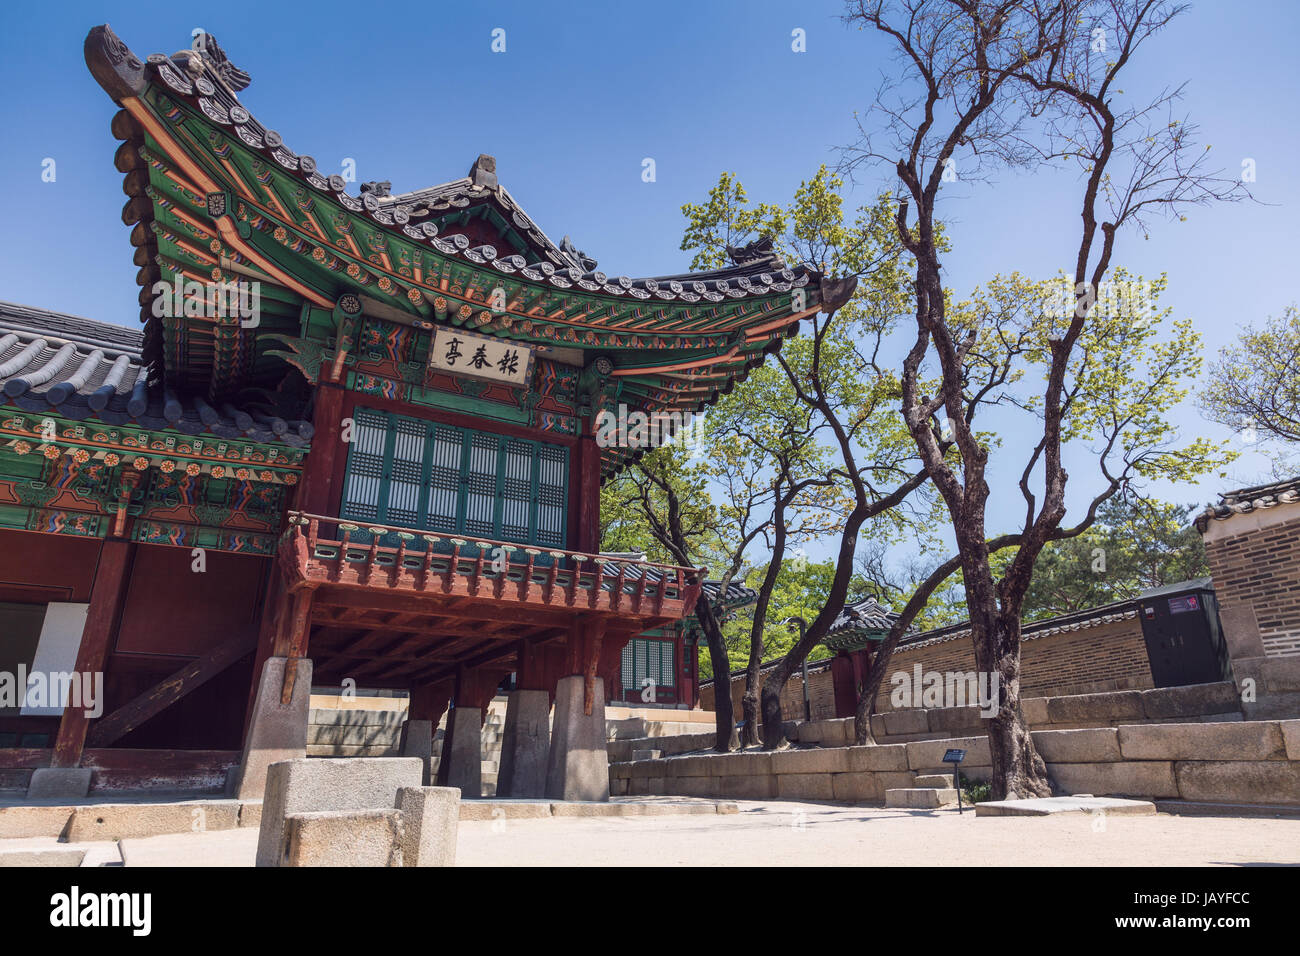 Changdeokgung Palace or Changdeok Palace, is a large park in Jongno-gu, Seoul, South Korea. Stock Photo